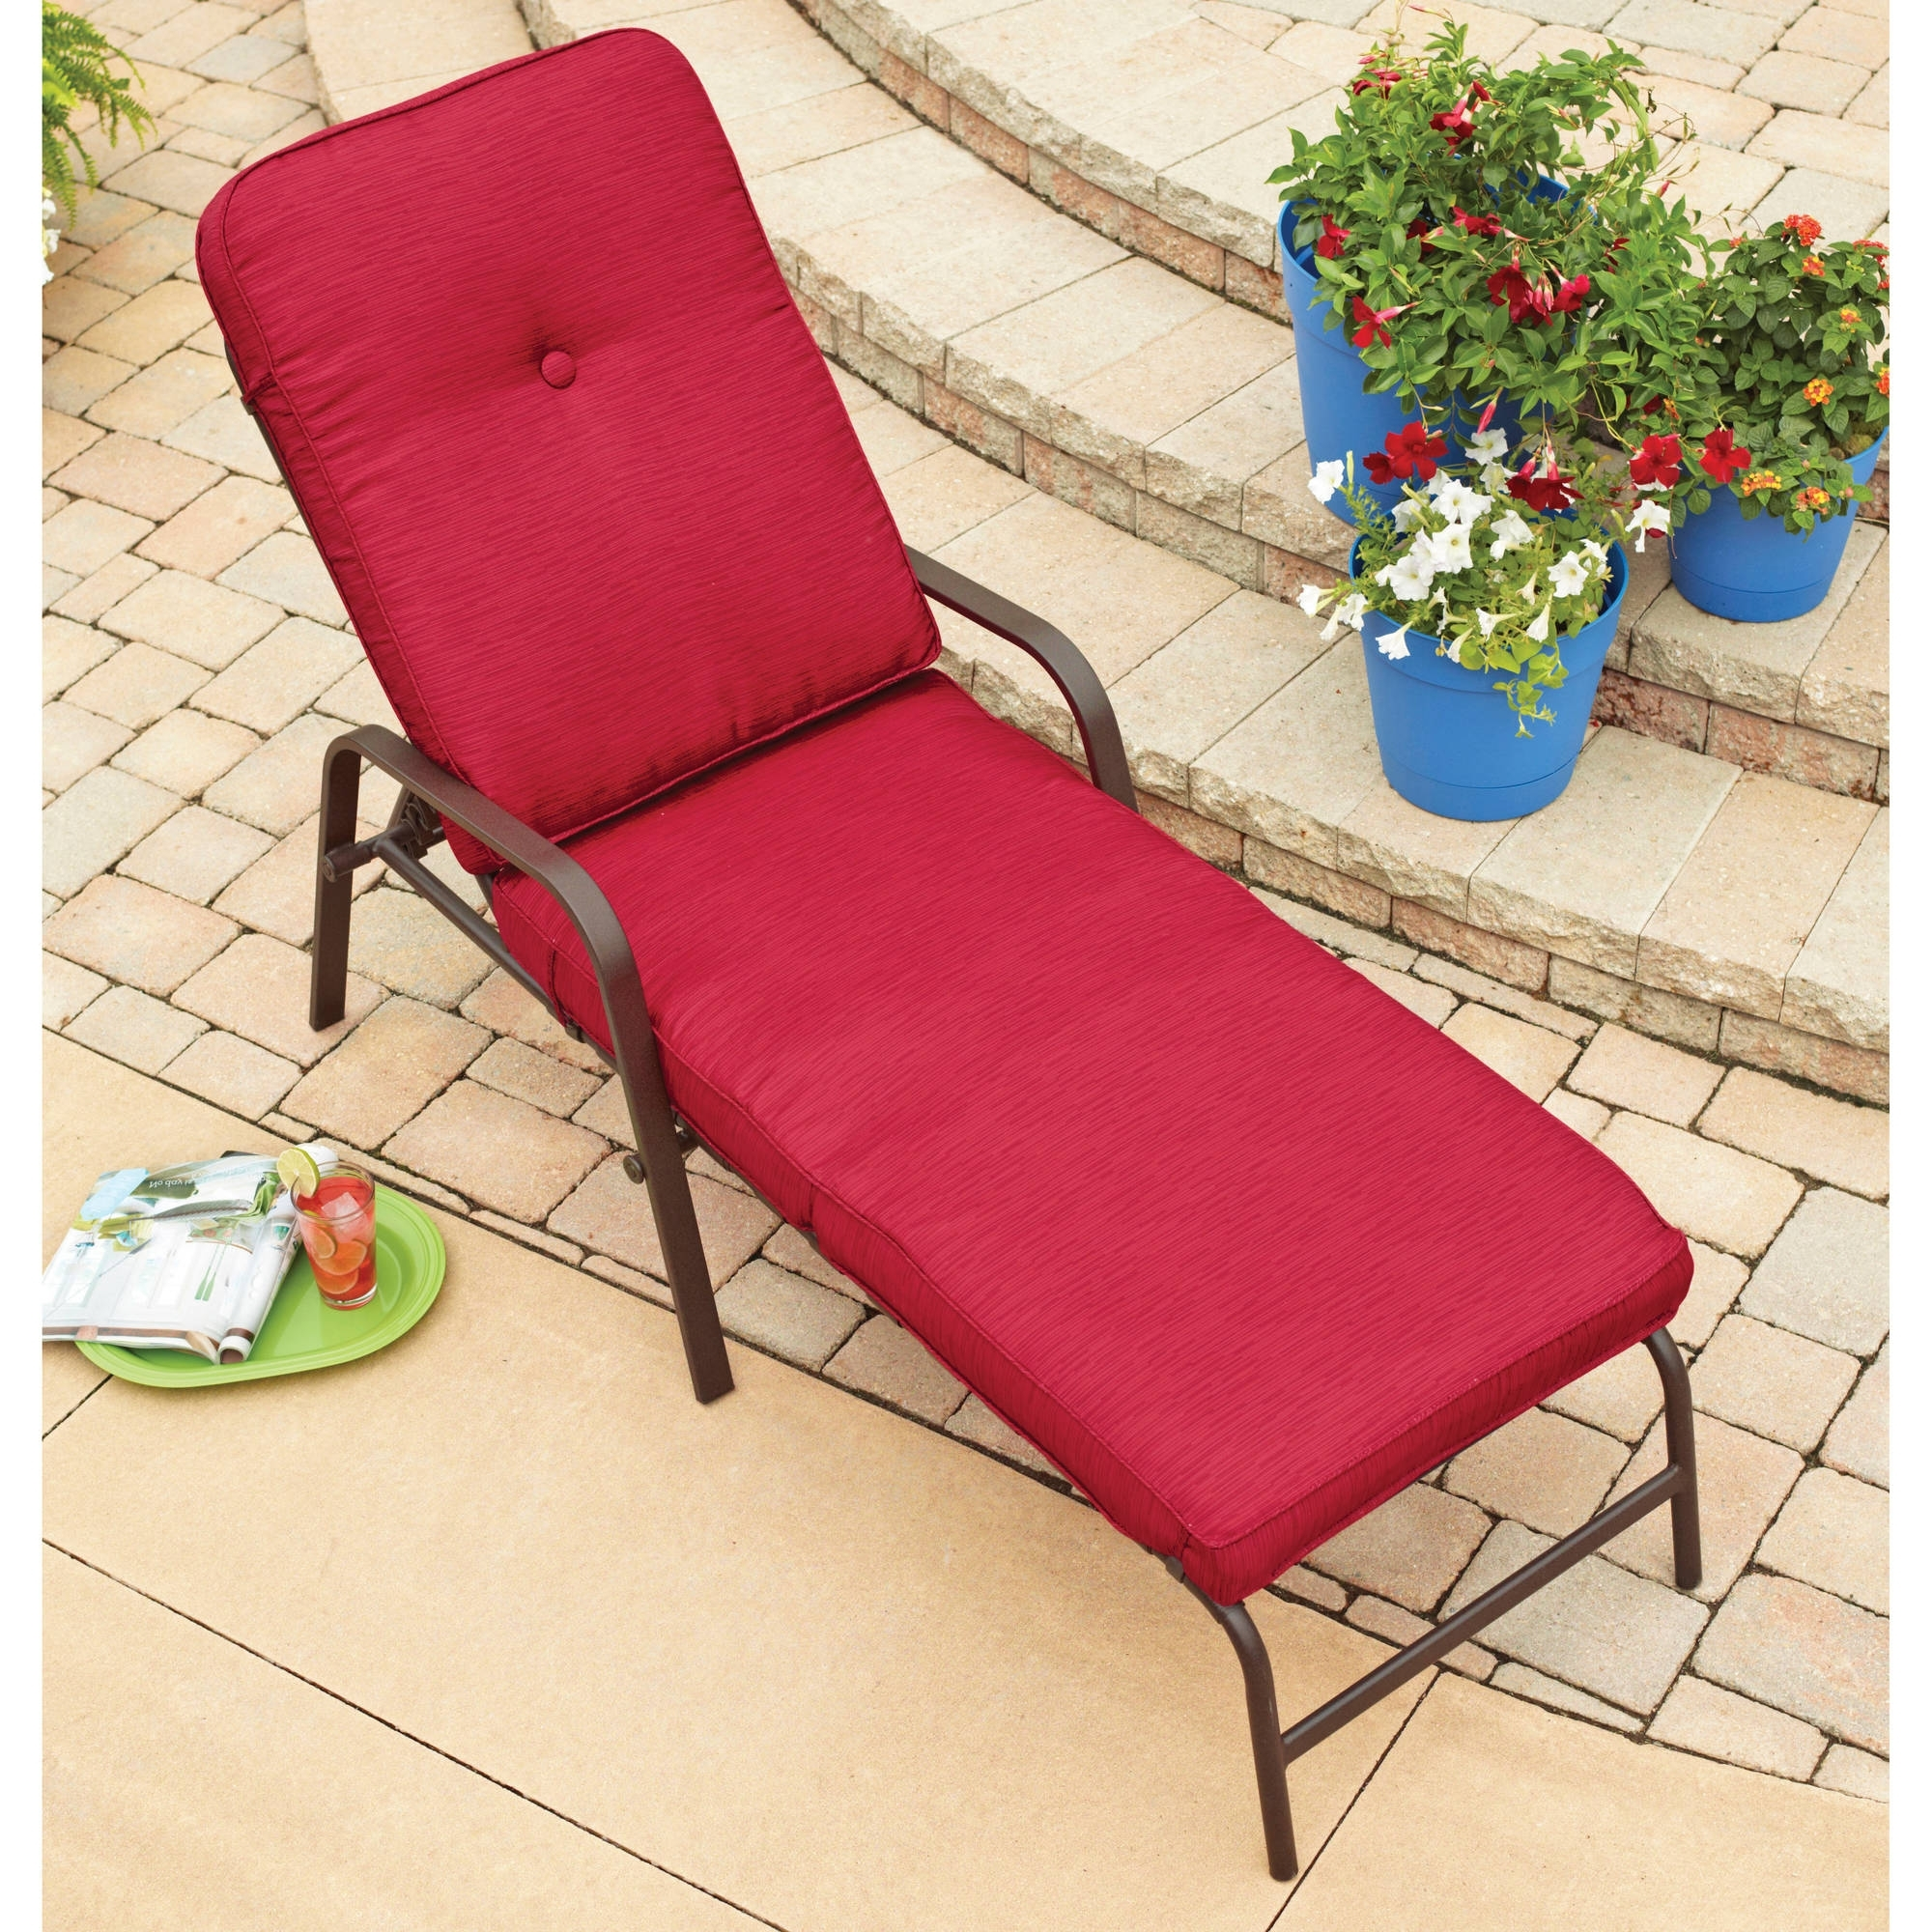 Alluring Patio Chaise Lounge Walmart On Red Outdoor Lounge Chairs Throughout 2017 Outdoor Chaise Lounge Chairs At Walmart (View 12 of 15)